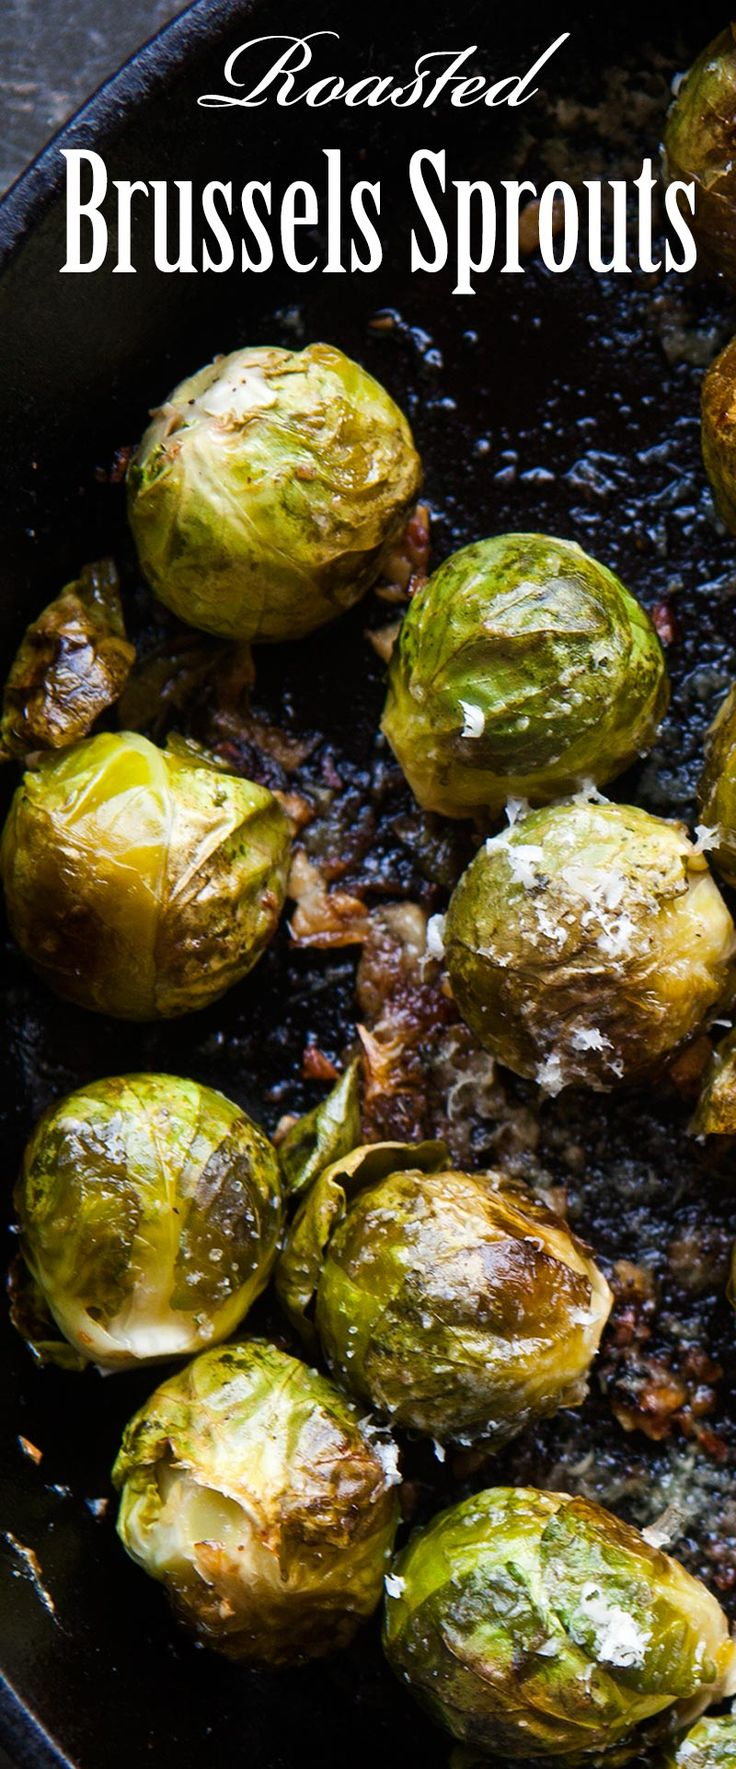 The BEST way to cook brussels sprouts? ROASTED! Like popcorn, they're so addictive. With garlic, olive oil, lemon juice, salt, and Parmesan. Perfect for your next holiday gathering.